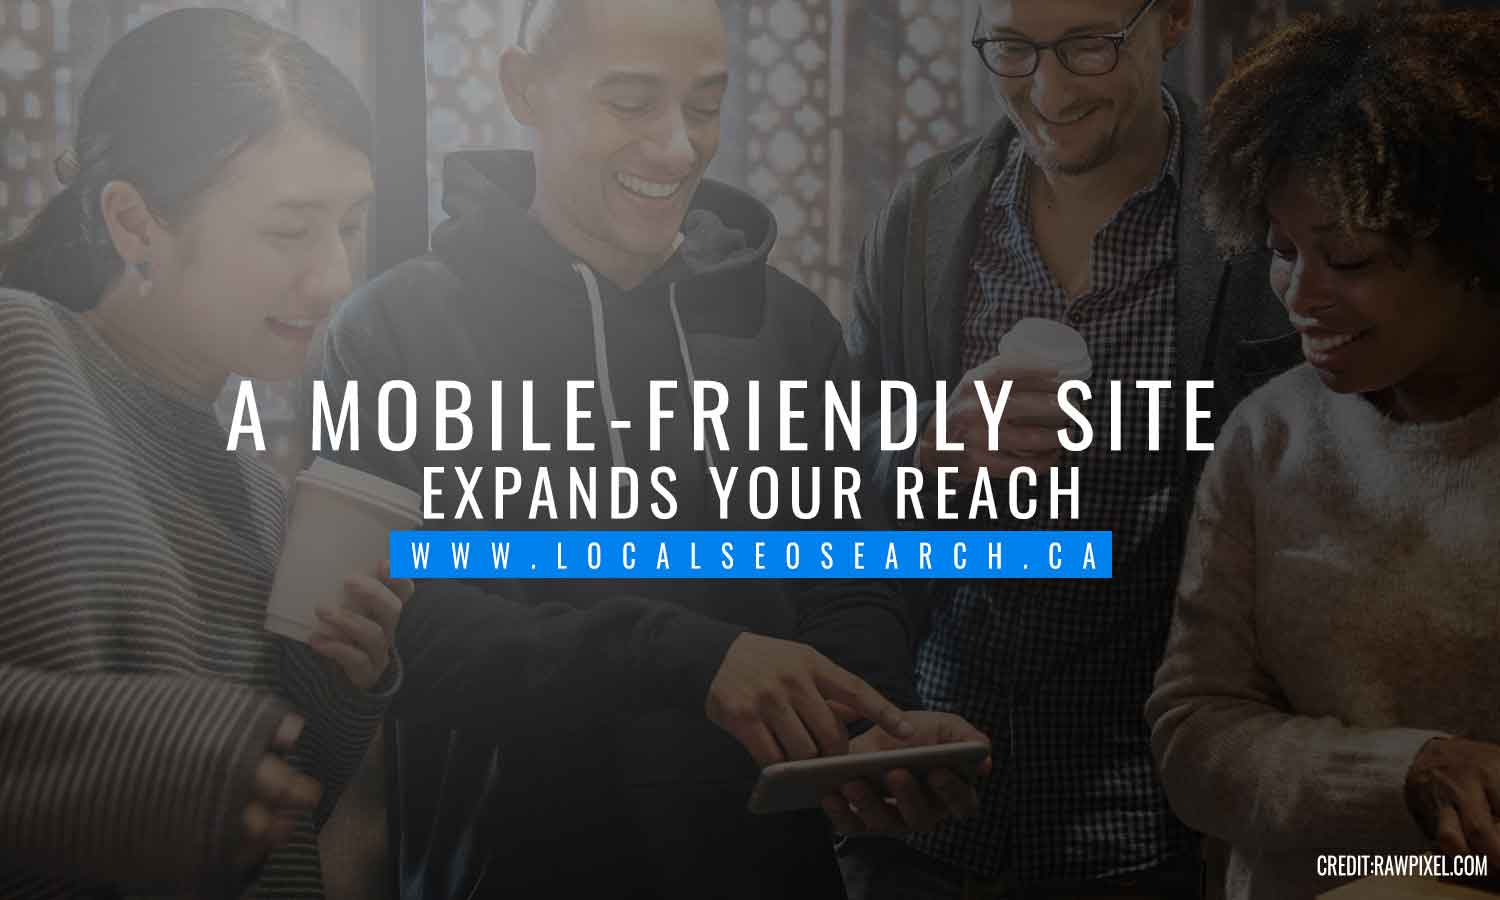 mobile-friendly site expands your reach